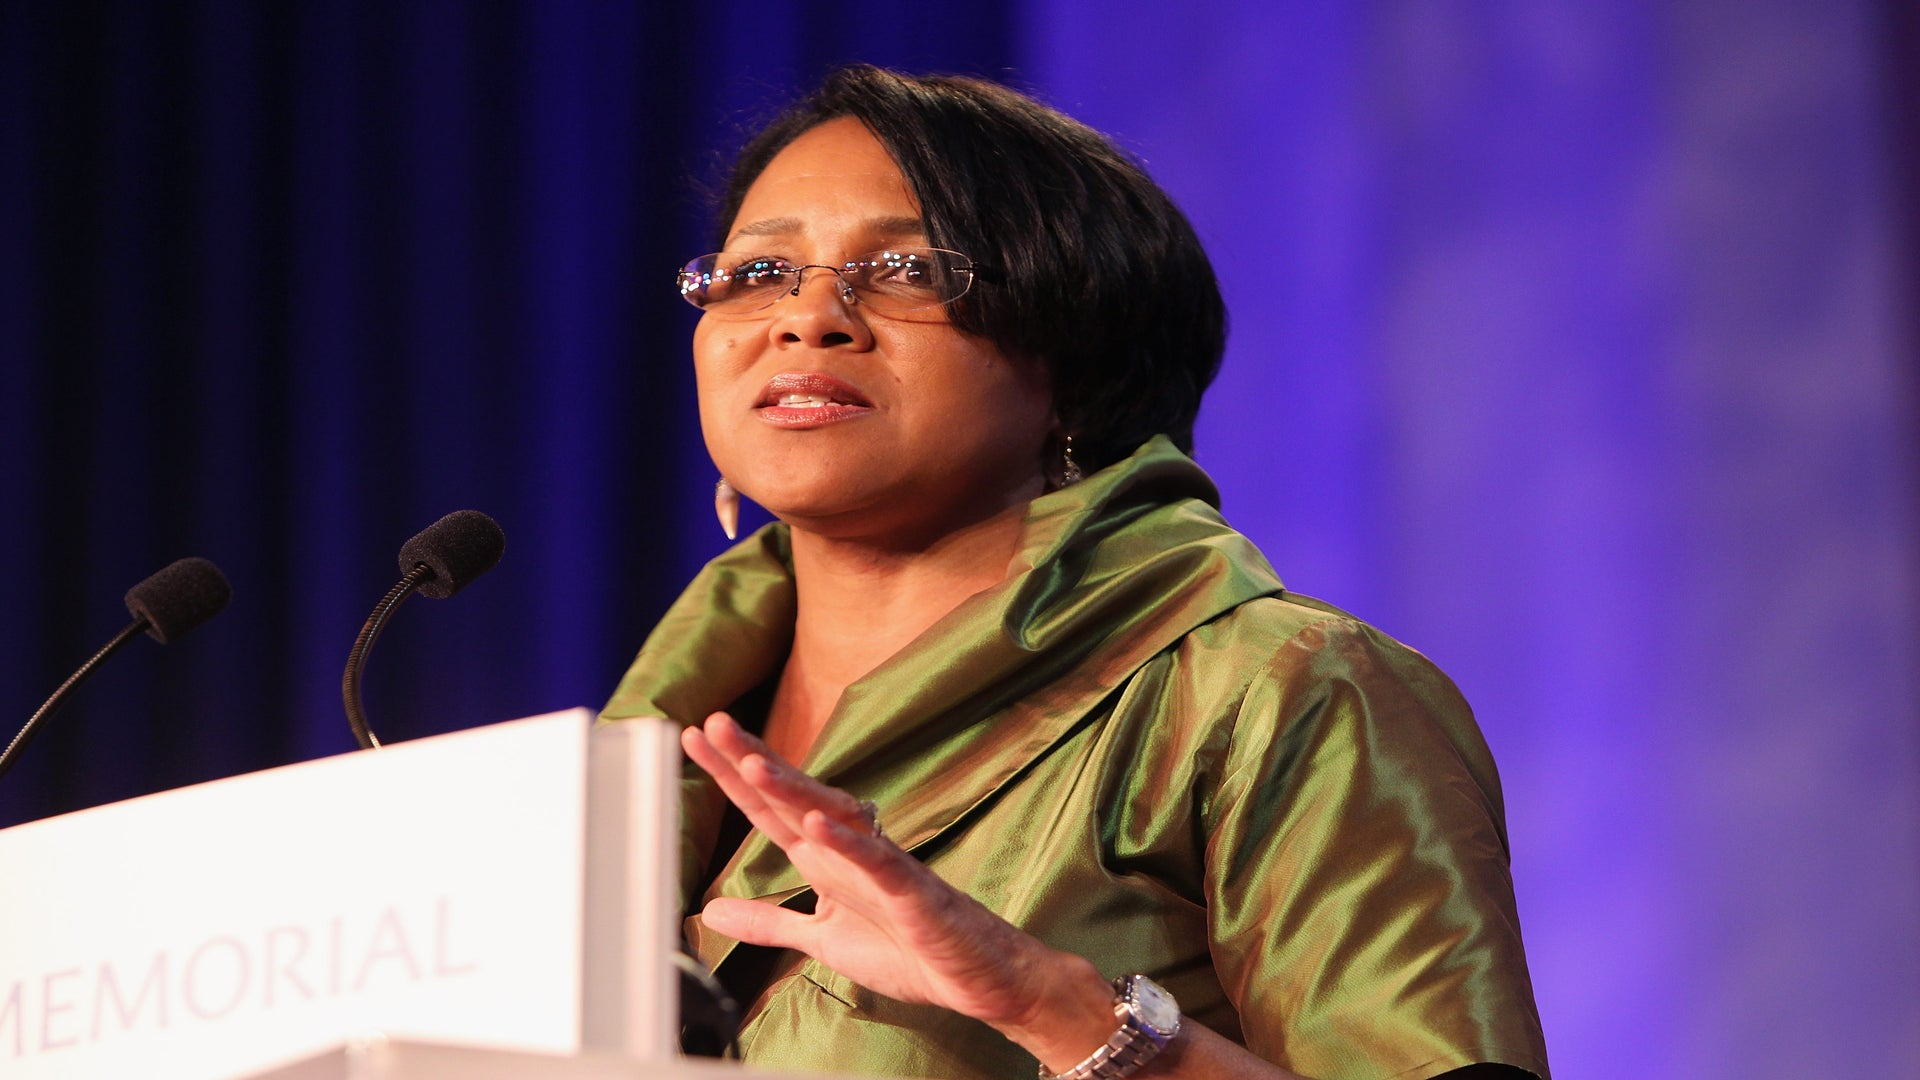 Rosalind Brewer Just Became The First Black Woman COO Of Starbucks